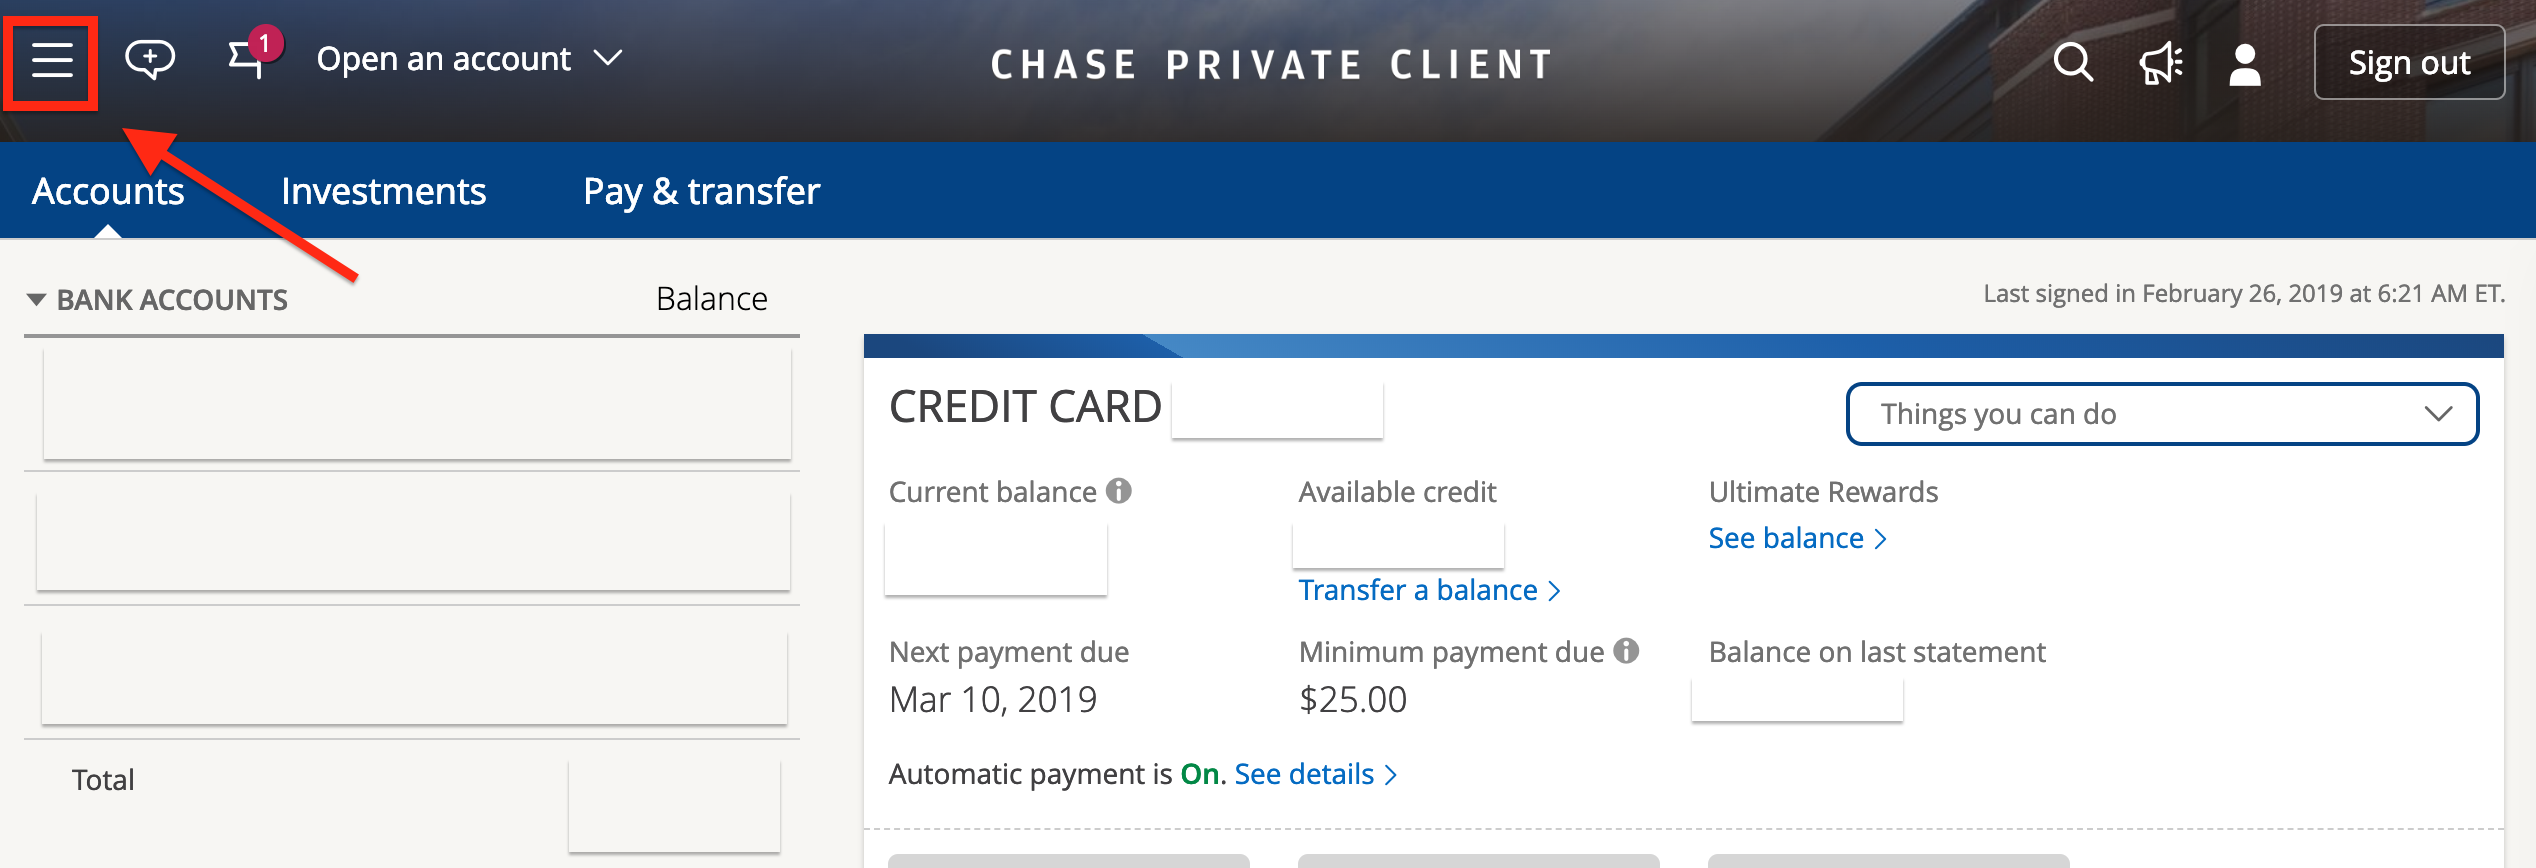 How To Setup a Chase Travel Notice for Your Credit Cards [2019]